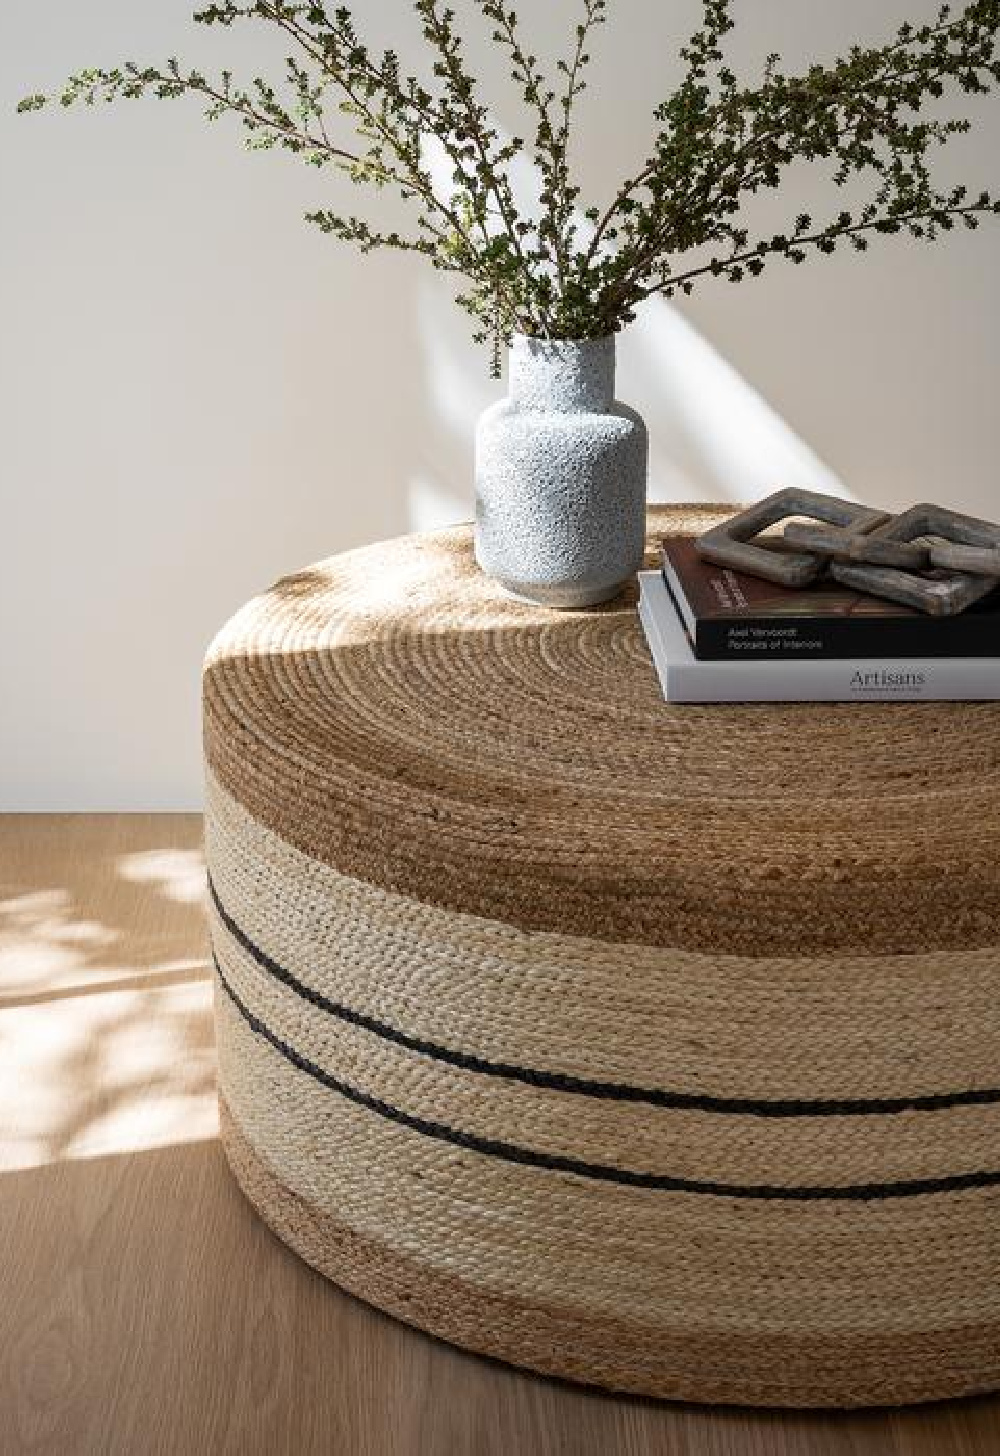 Round woven ottoman (Brynlee) by McGee & Co. makes a perfect rustic, neutral decor statement in a variety of interiors.